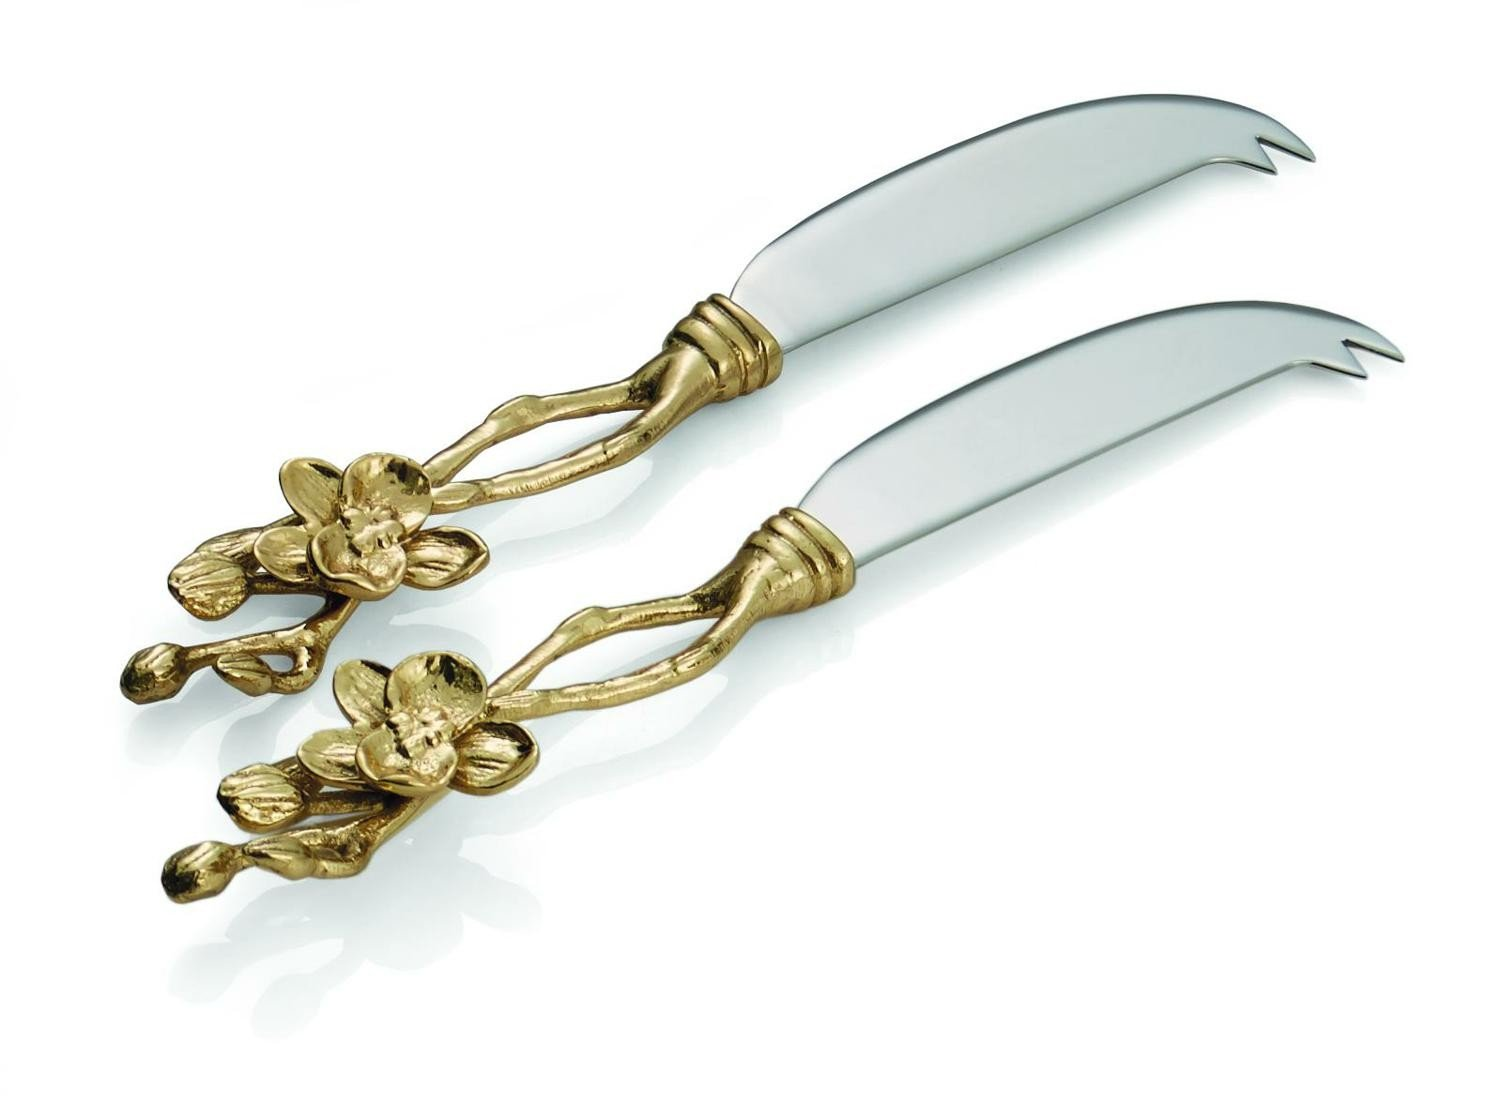 MICHAEL ARAM Golden Orchid CHEESEKNIFE SET OF TWO 111956 by Michael Aram